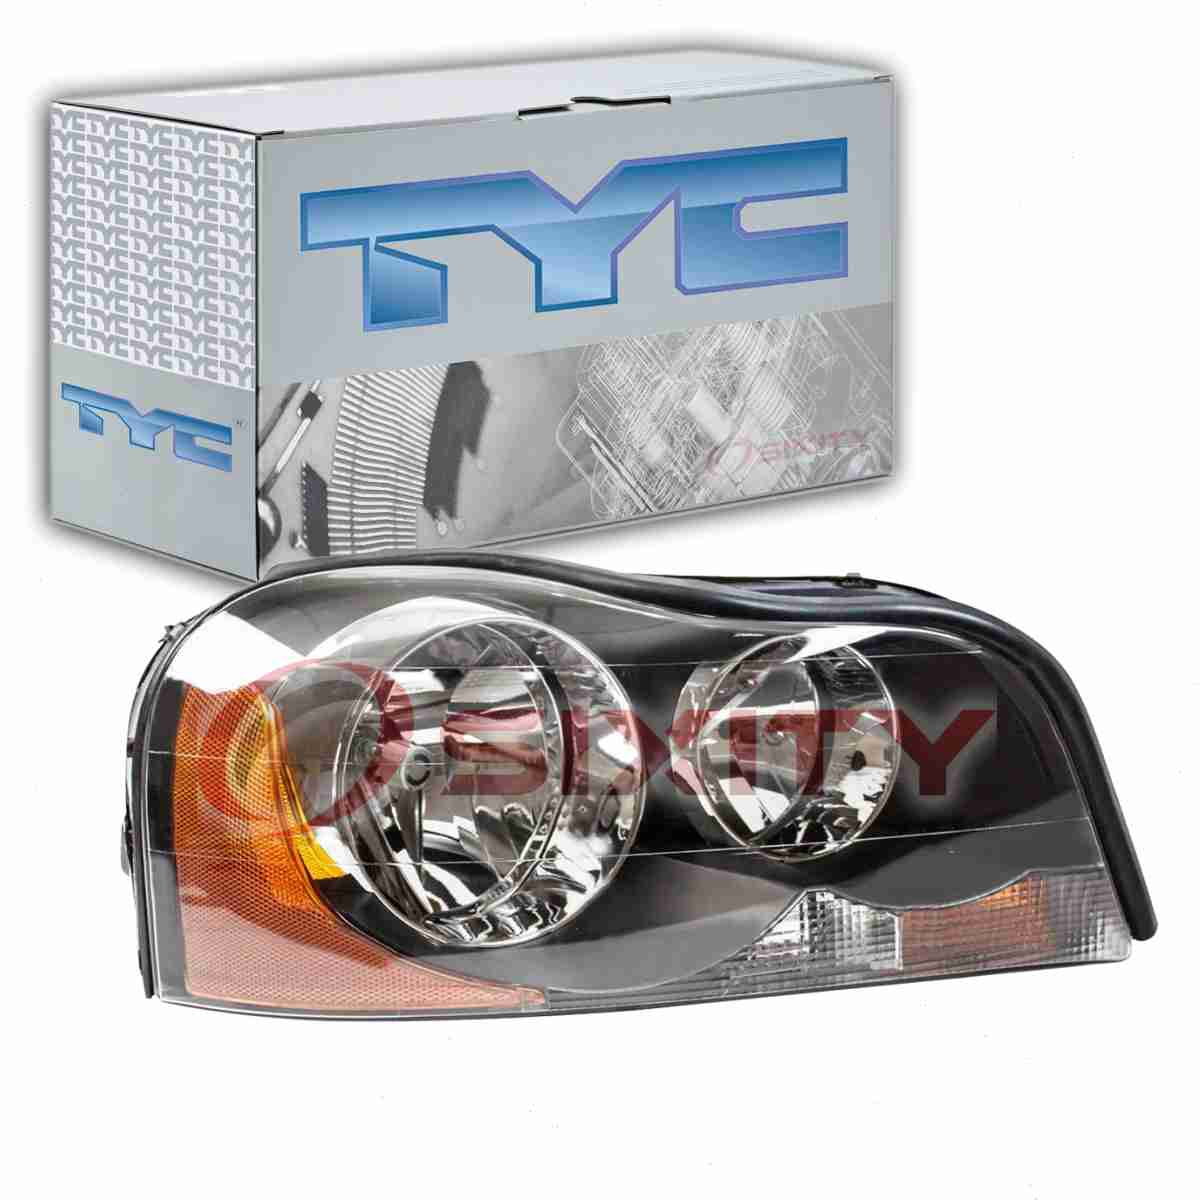 Driver side WITH install kit 2008 Volvo VHD Side Roof mount spotlight -Chrome 6 inch 100W Halogen